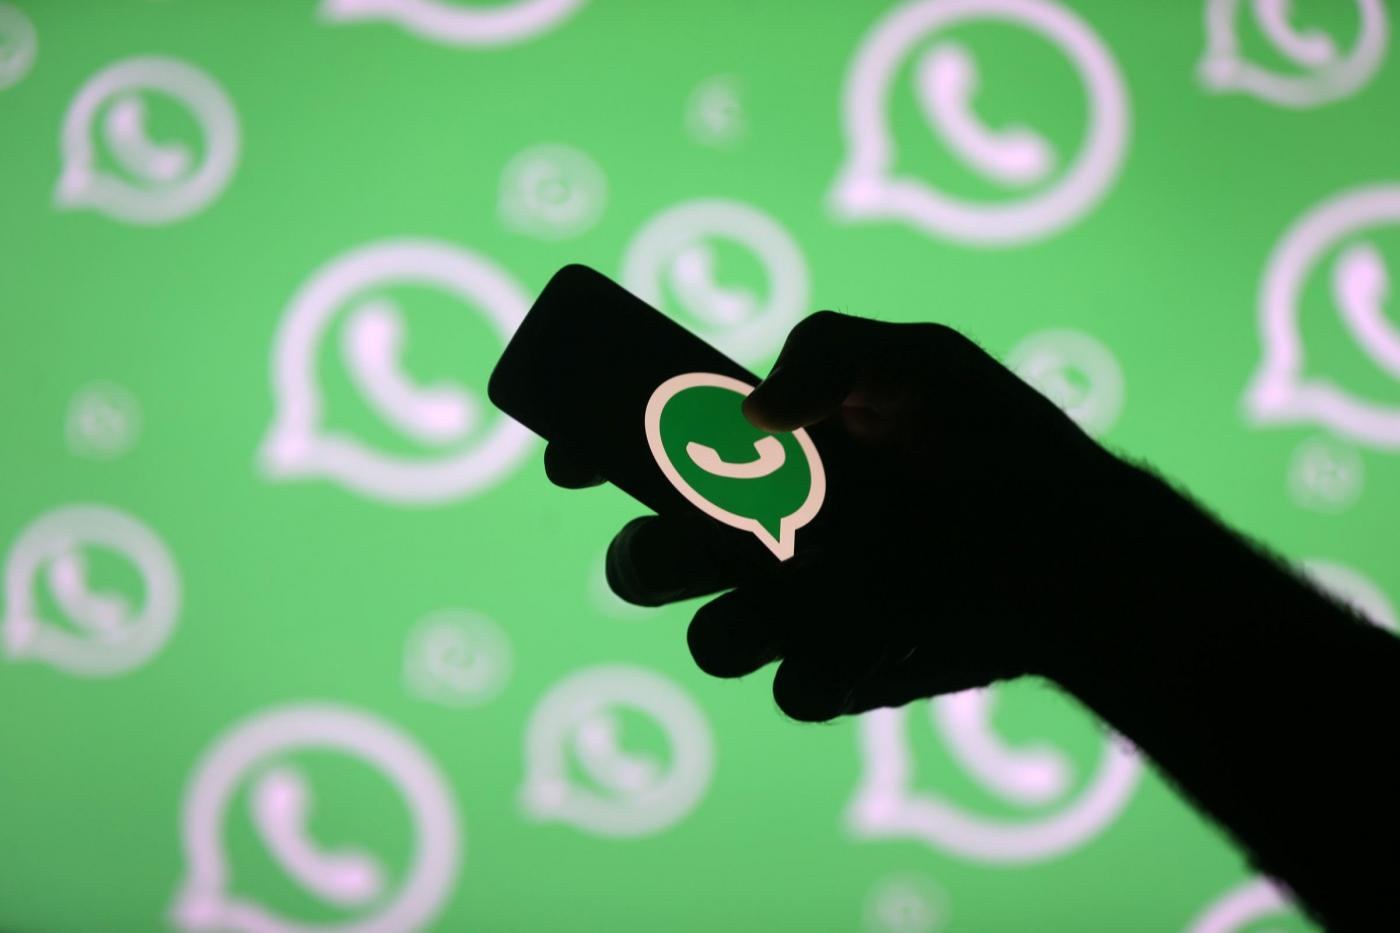 Come creare gruppi e broadcast su Whatsapp